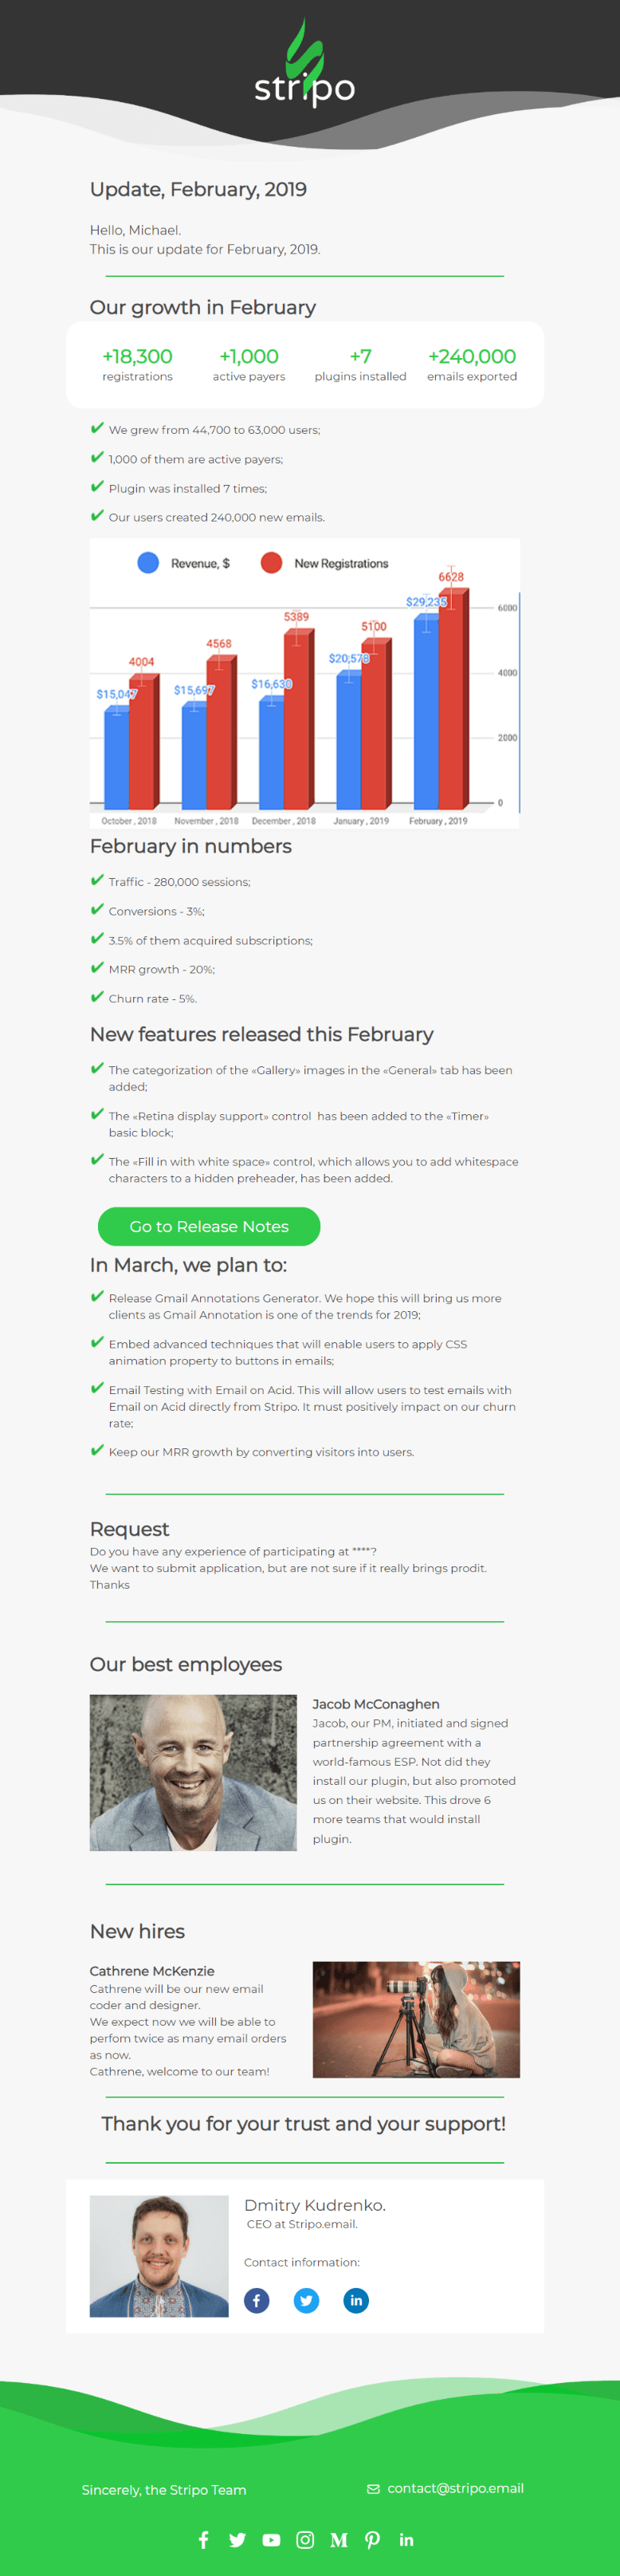 Stripo Investor Monthly Update Email Template by Stripo